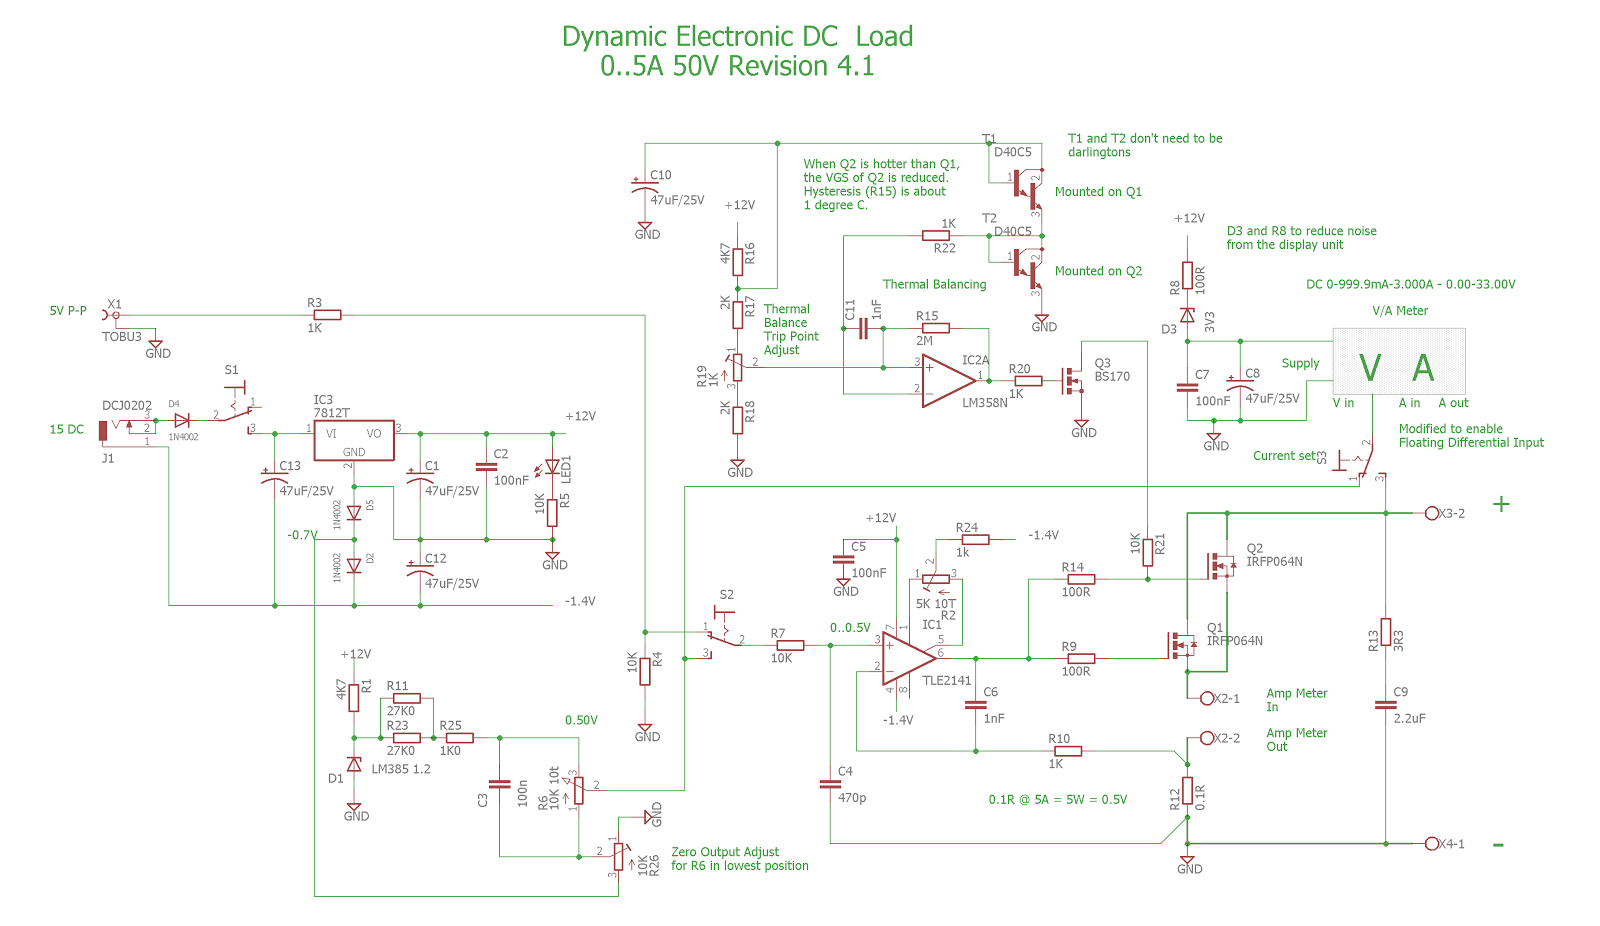 Pauls Diy Electronics Blog 2015 5v To 12v Inverting Switching Regulator Electronicslab While Going Through The Design Of A New Power Supply Post Will Be Coming I Was Not Satisfied With Dynamic Load